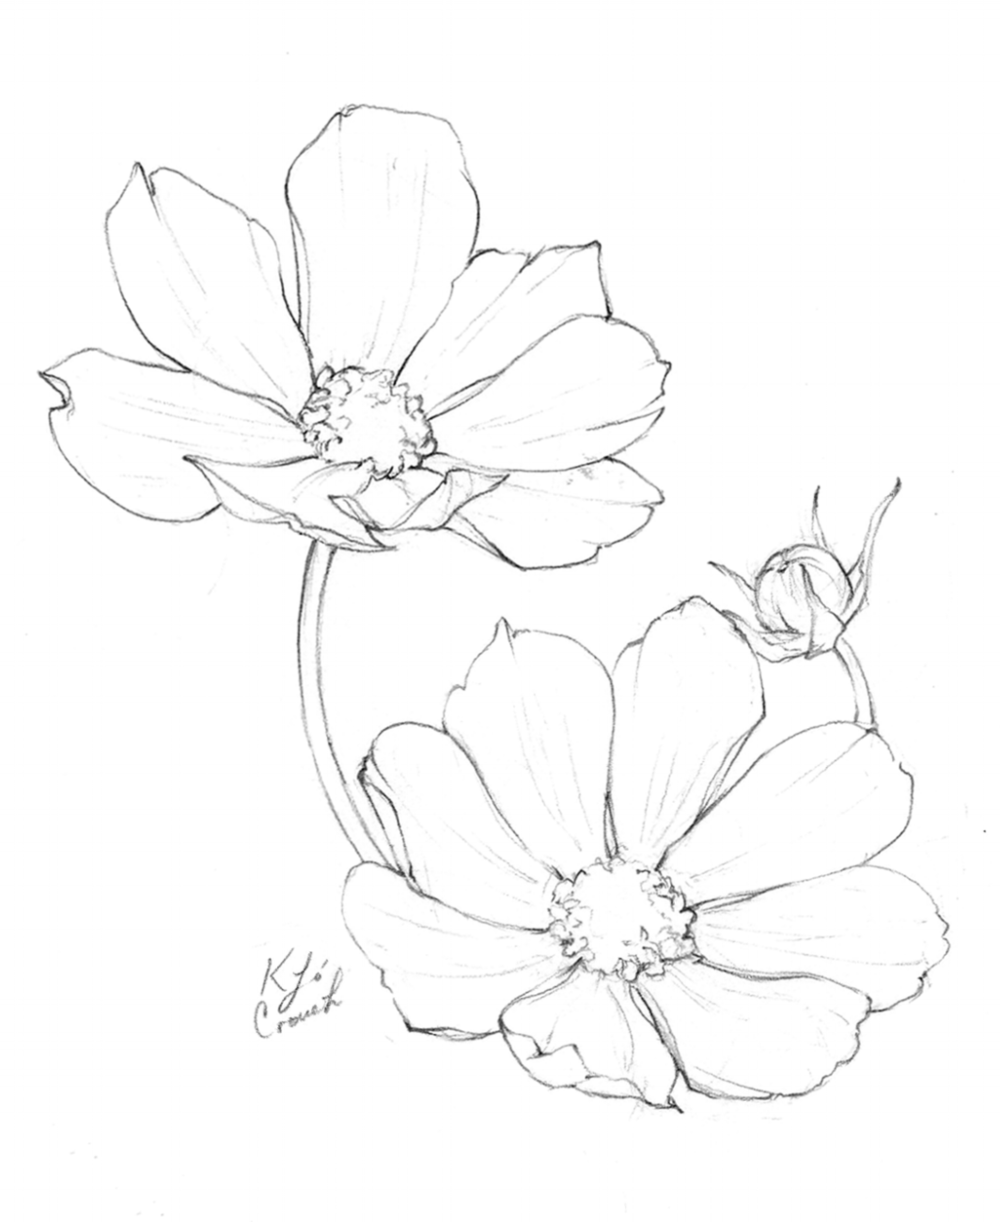 Flower Drawings Inktober 2018 Roundup Blushed Design Flower Sketches Drawings Flower Drawing